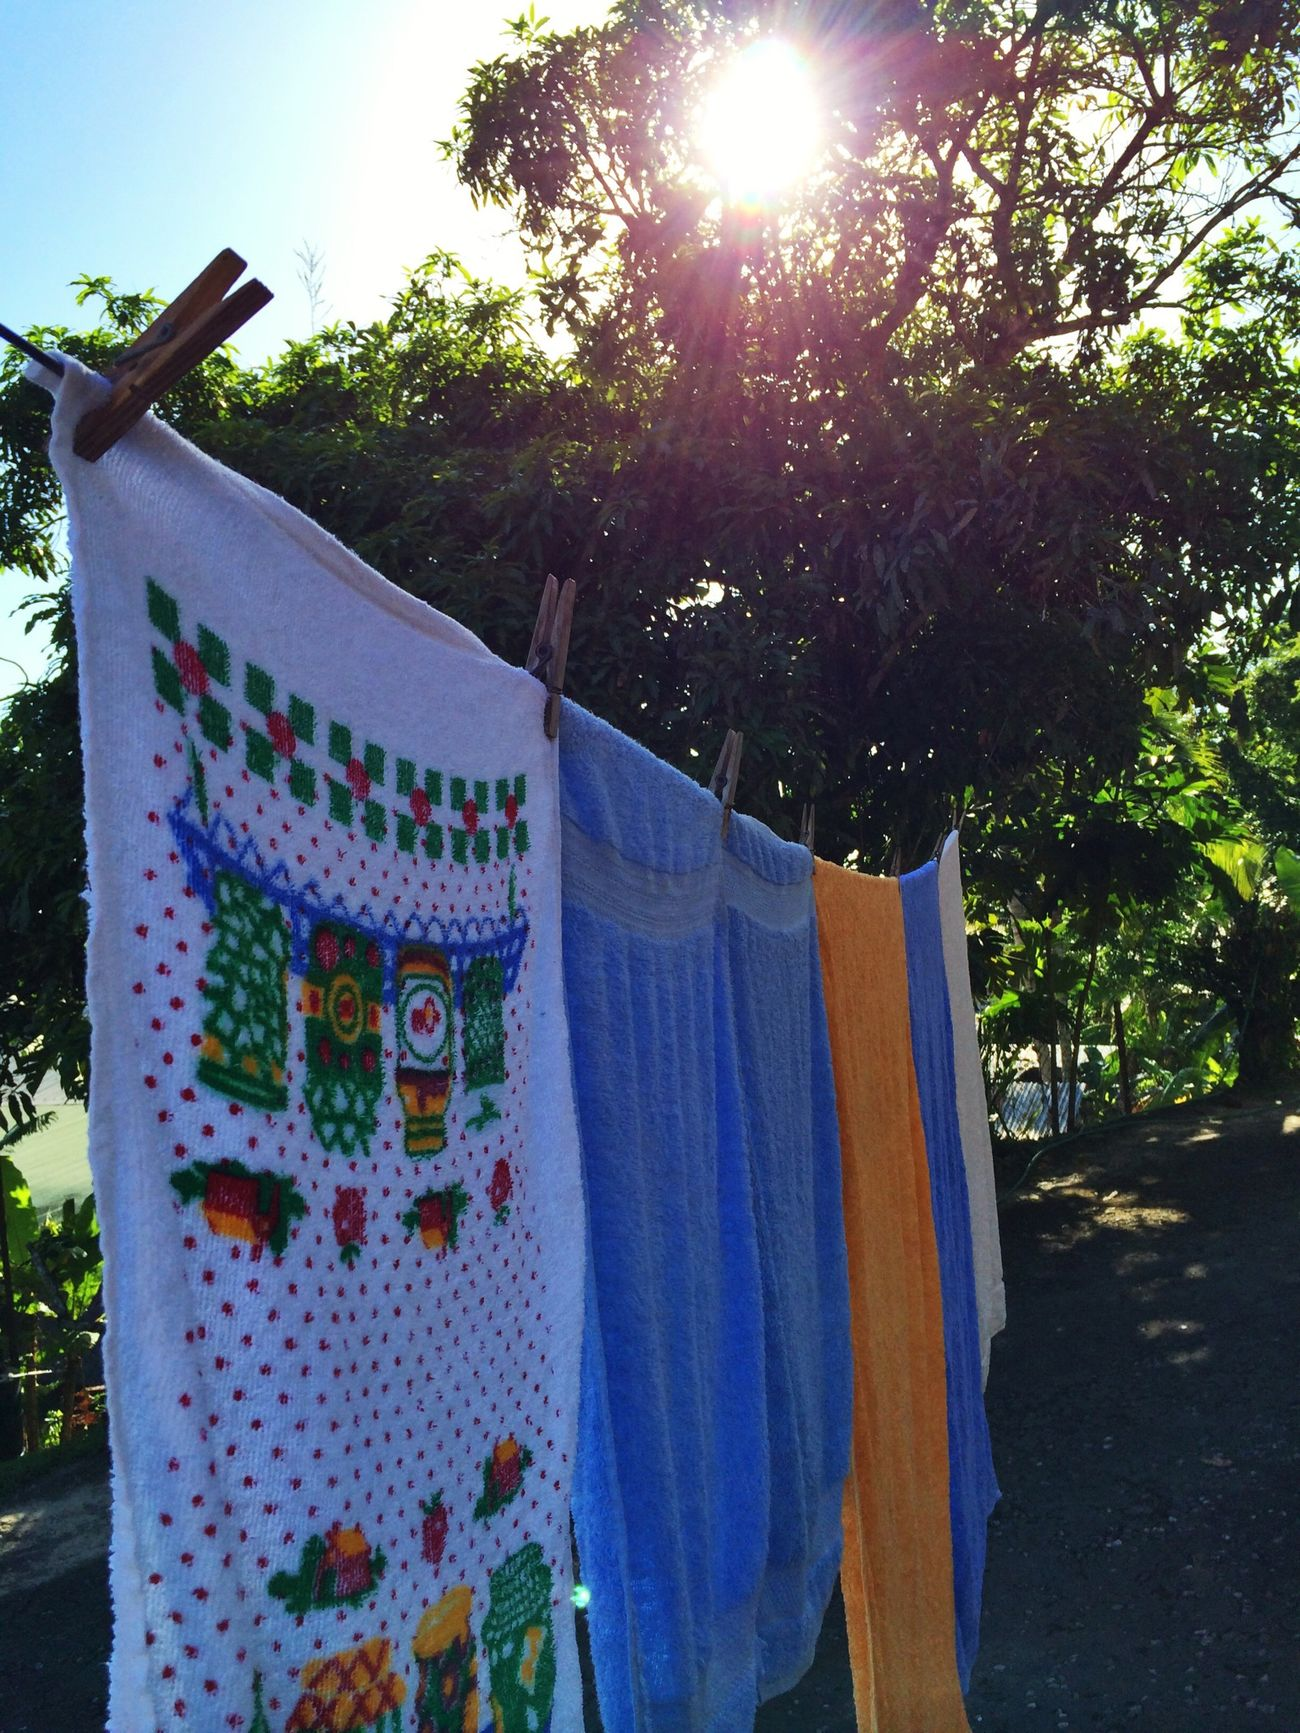 Laundry day on August 5, 2014 in Trinidad. #LifeInAVillage